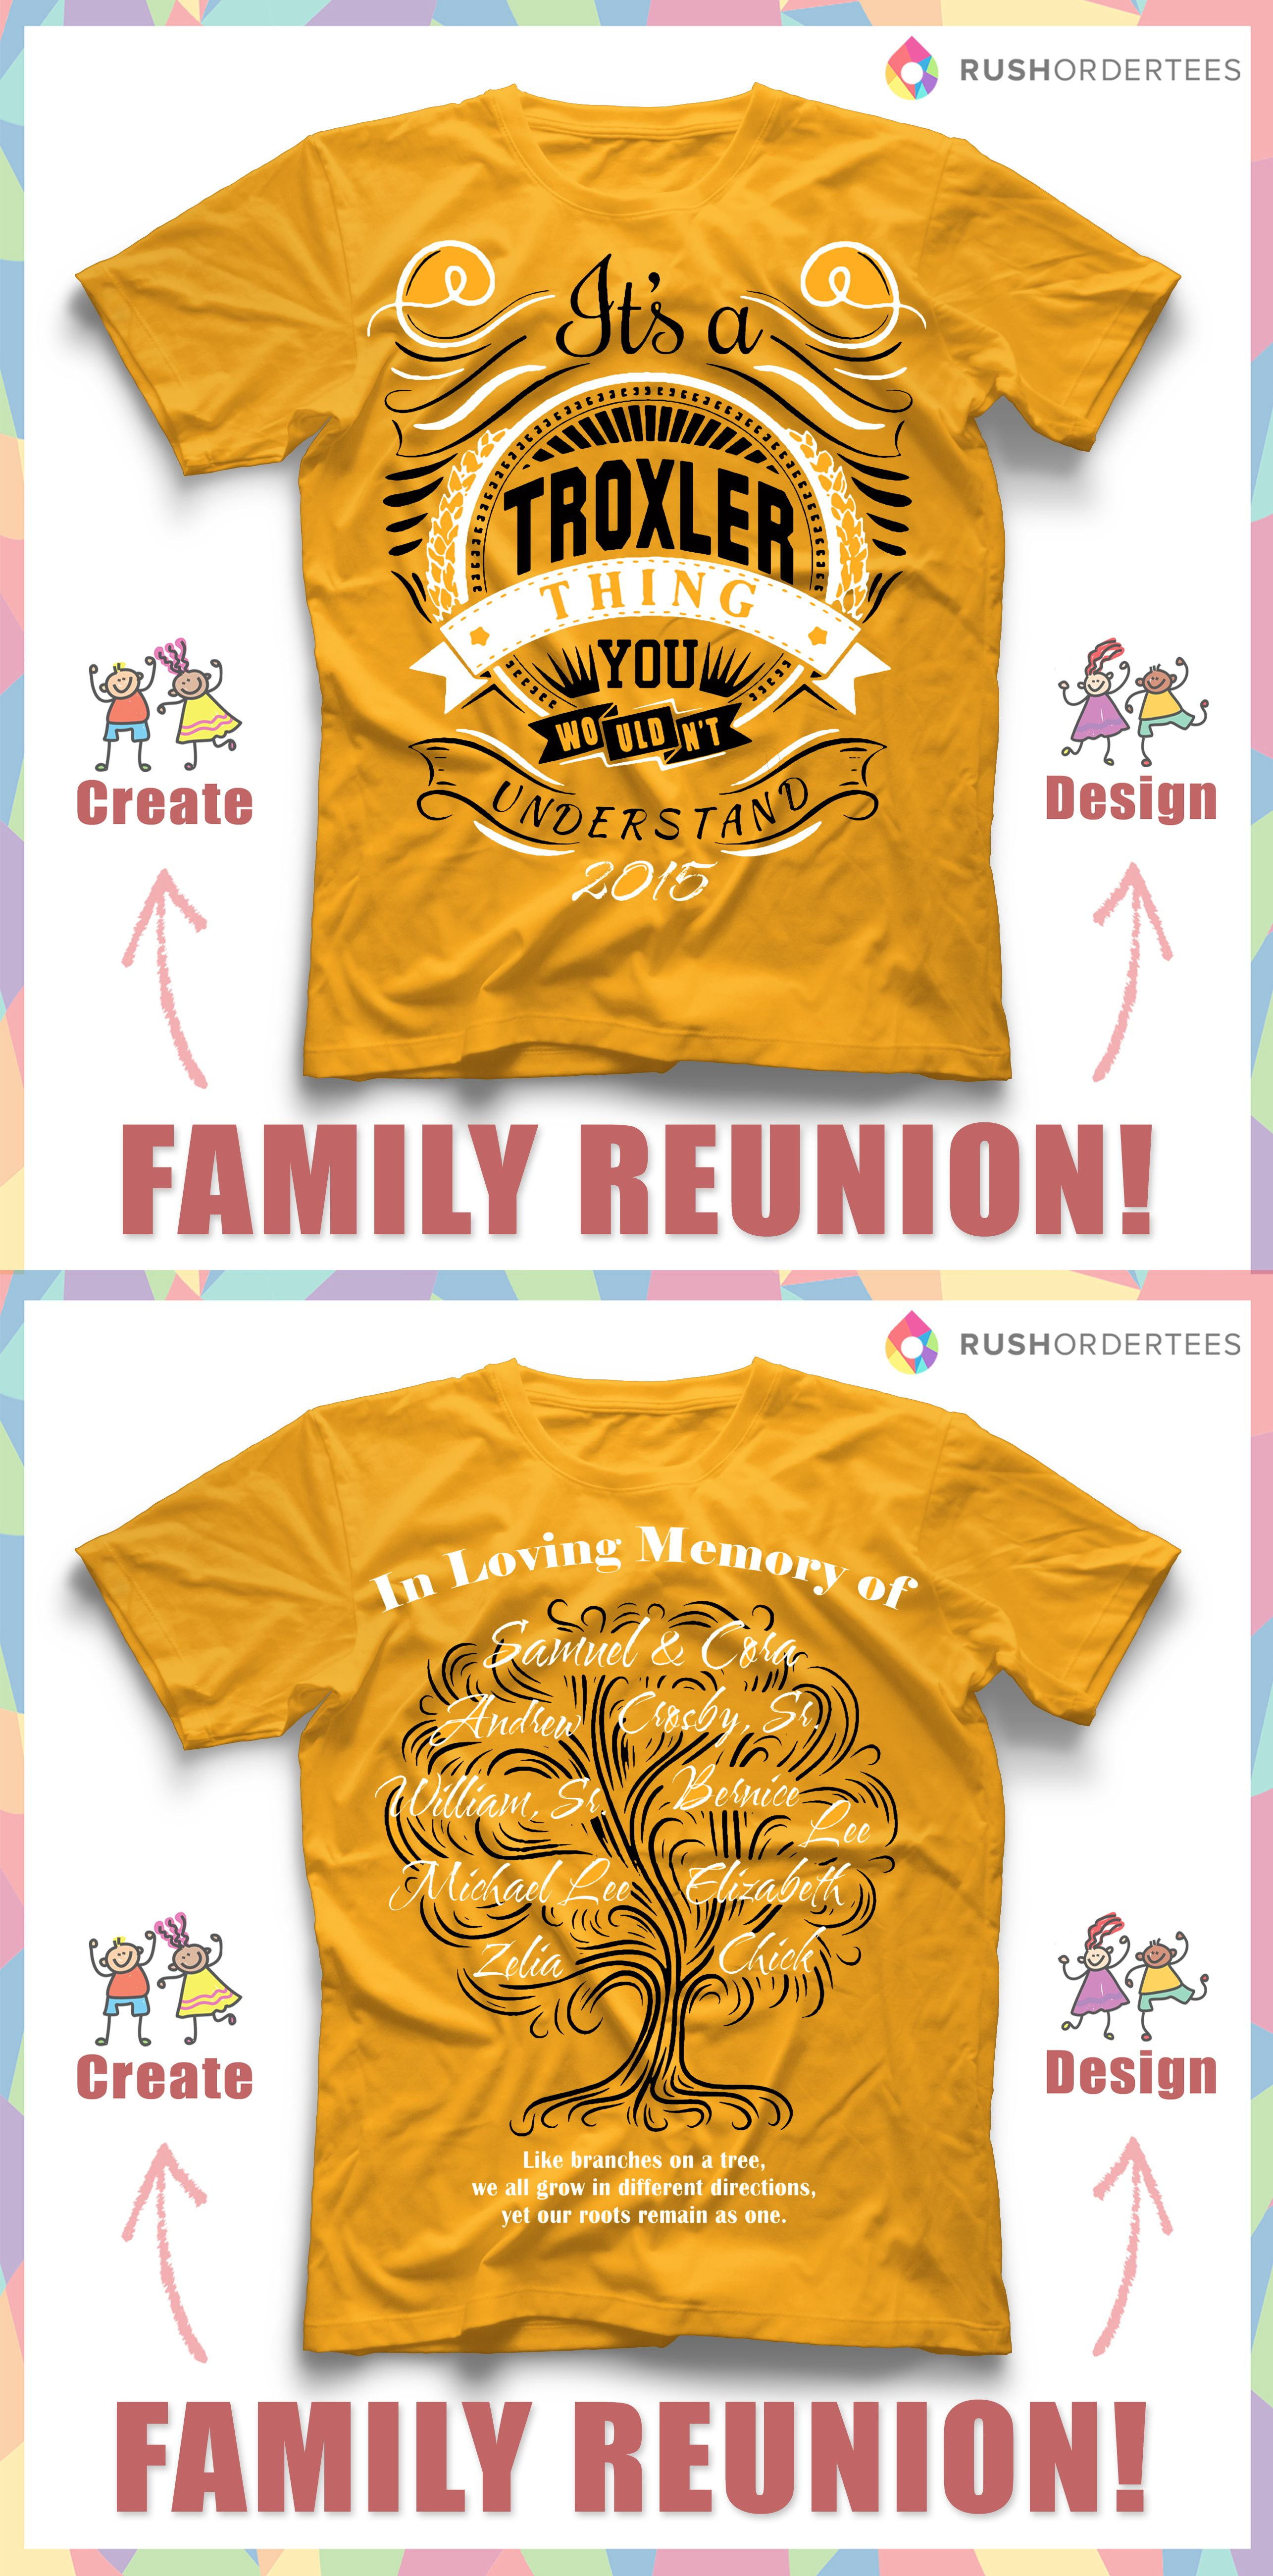 61e686f220 Family Reunion custom t-shirt design idea! Create an awesome custom design  for your next family reunion! www.rushordertees.com #familyreunion